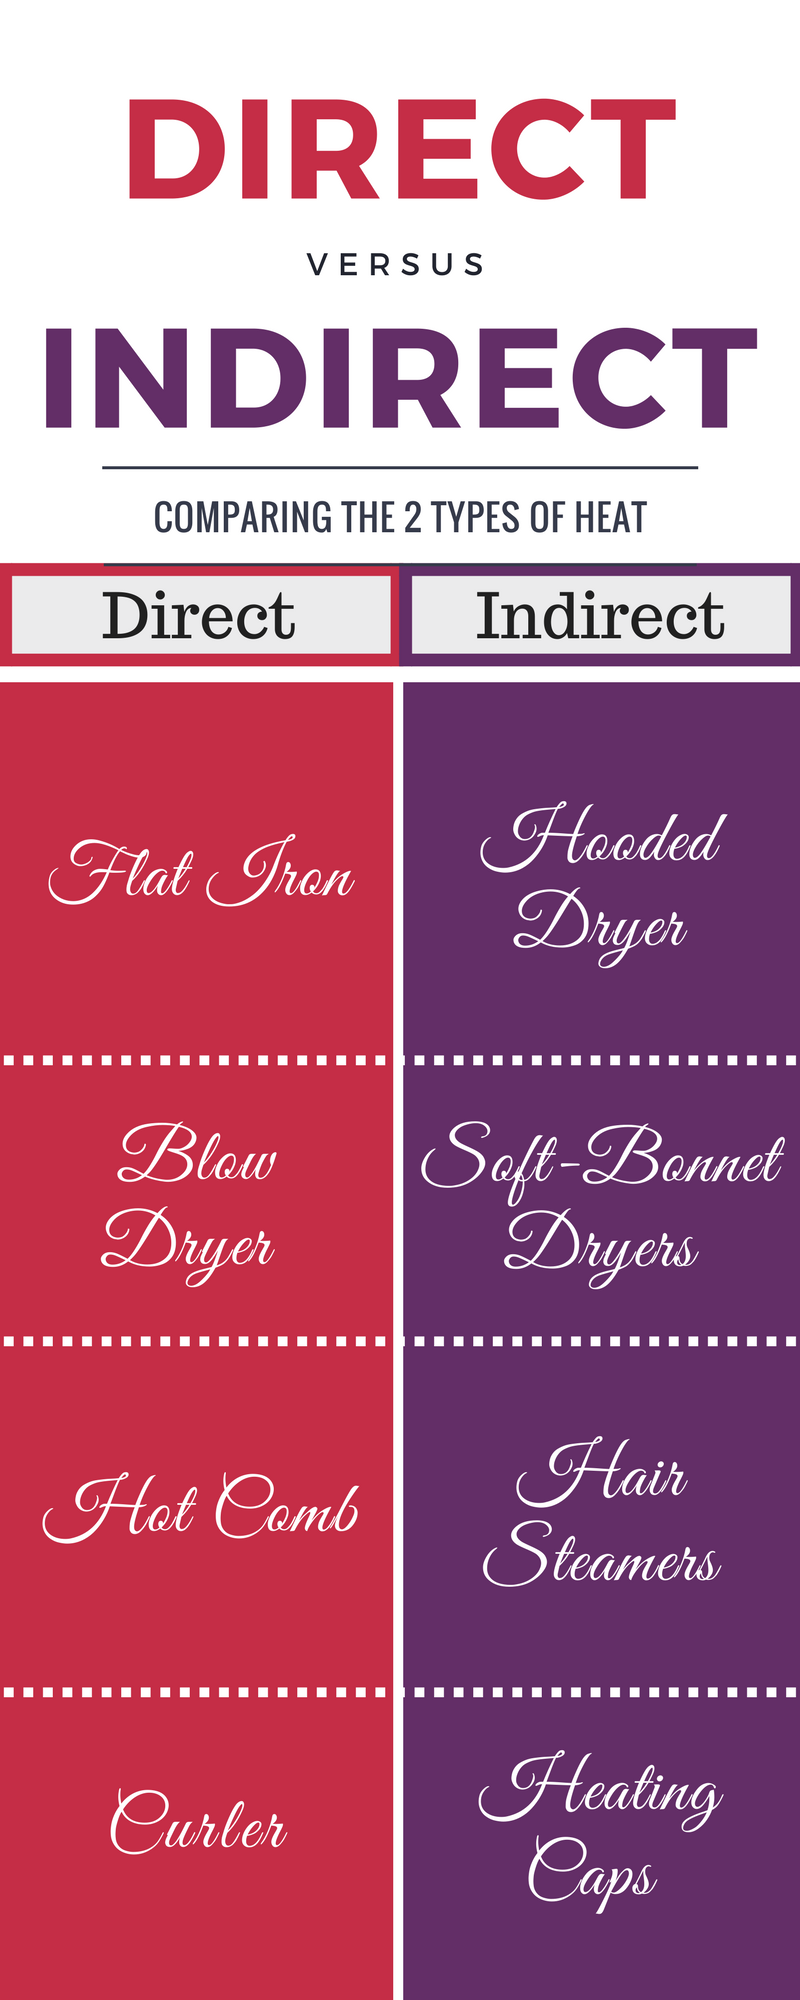 Direct Heat vs. Indirect Heat   #hair #naturalhair #haircare